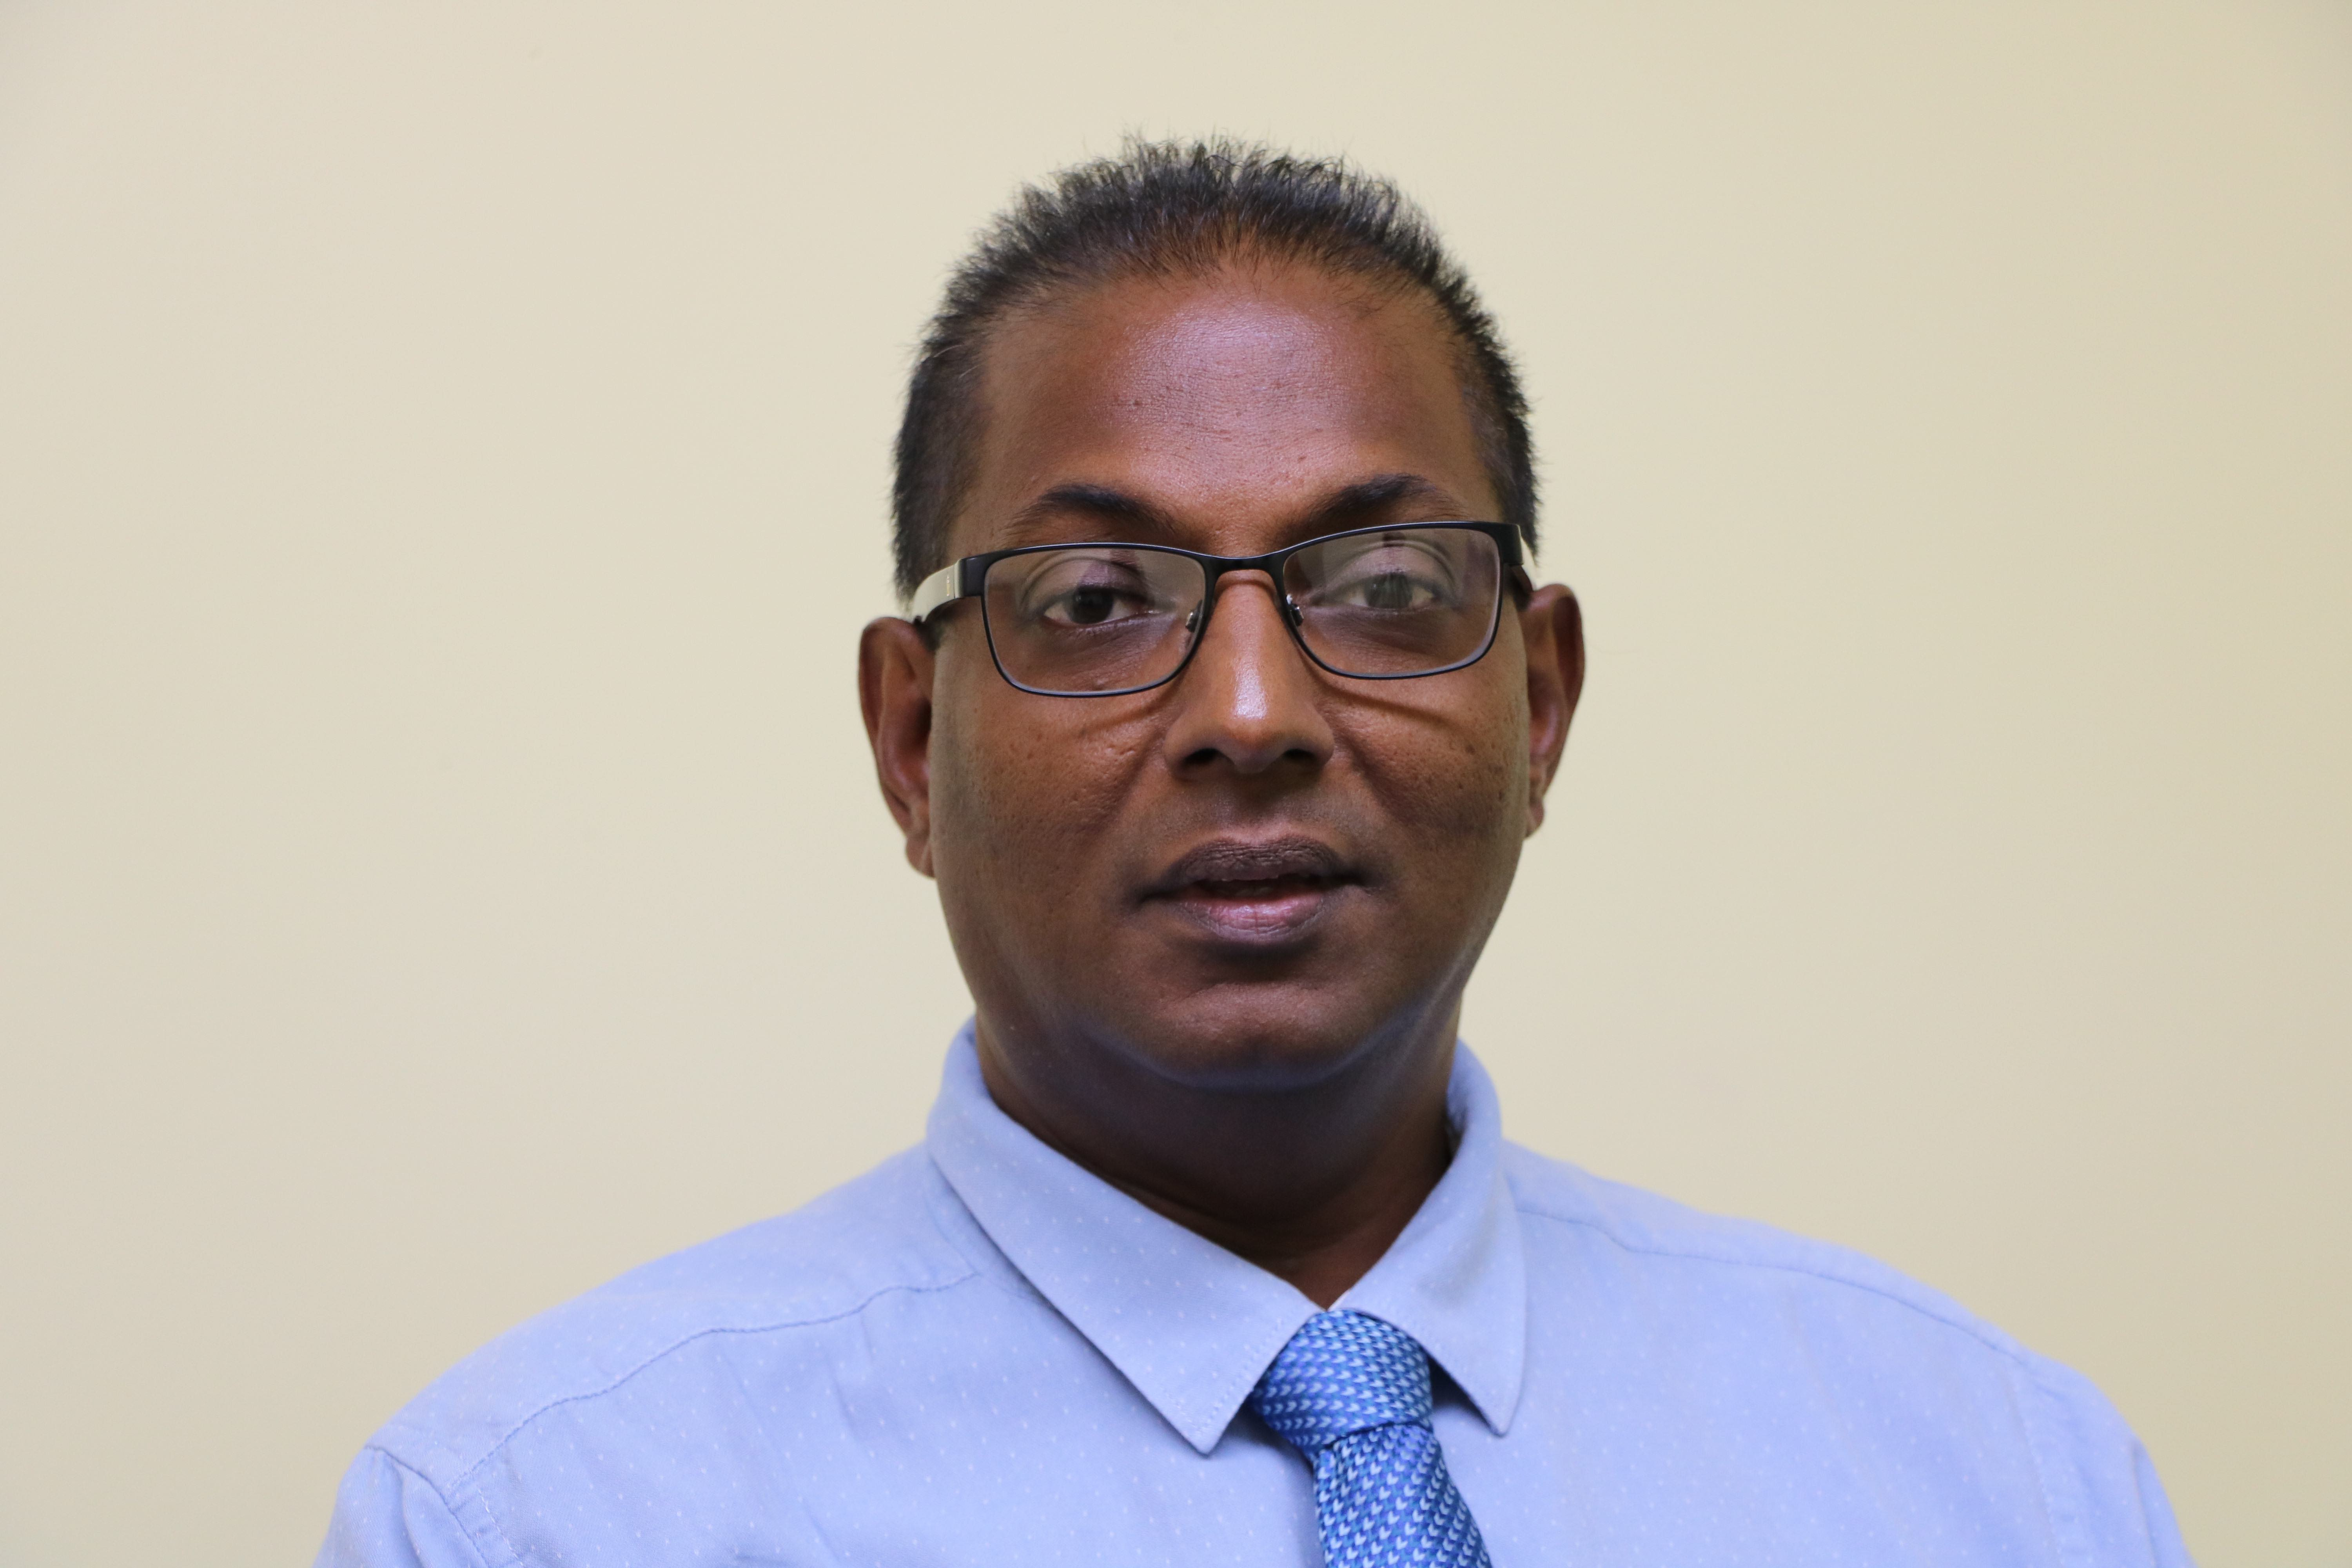 Mr. Gilroy Putie, General Manager of the Nevis Electricity Company Limited, at the Department of Information's office